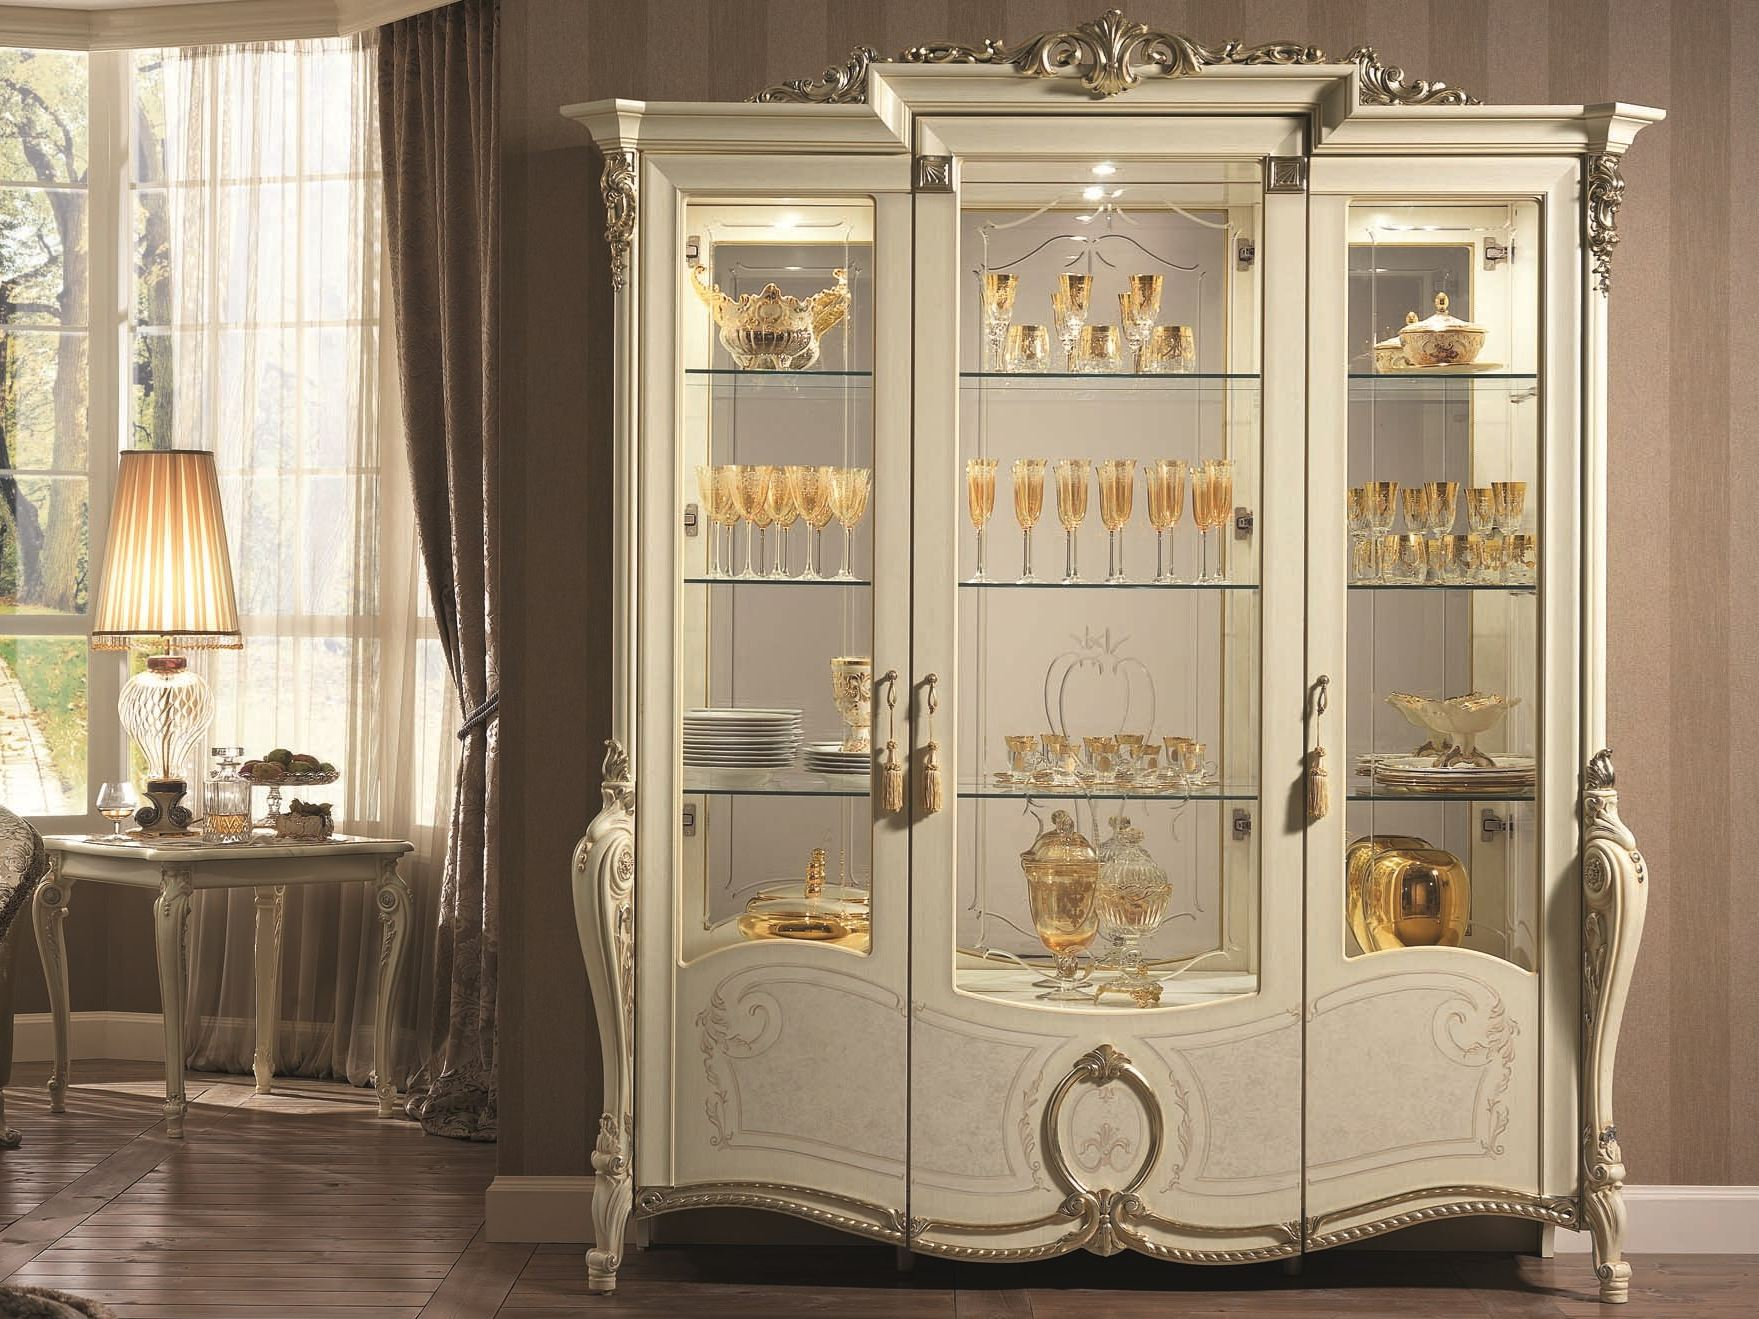 Tiziano display cabinet by arredoclassic for Classic kitchen cabinets